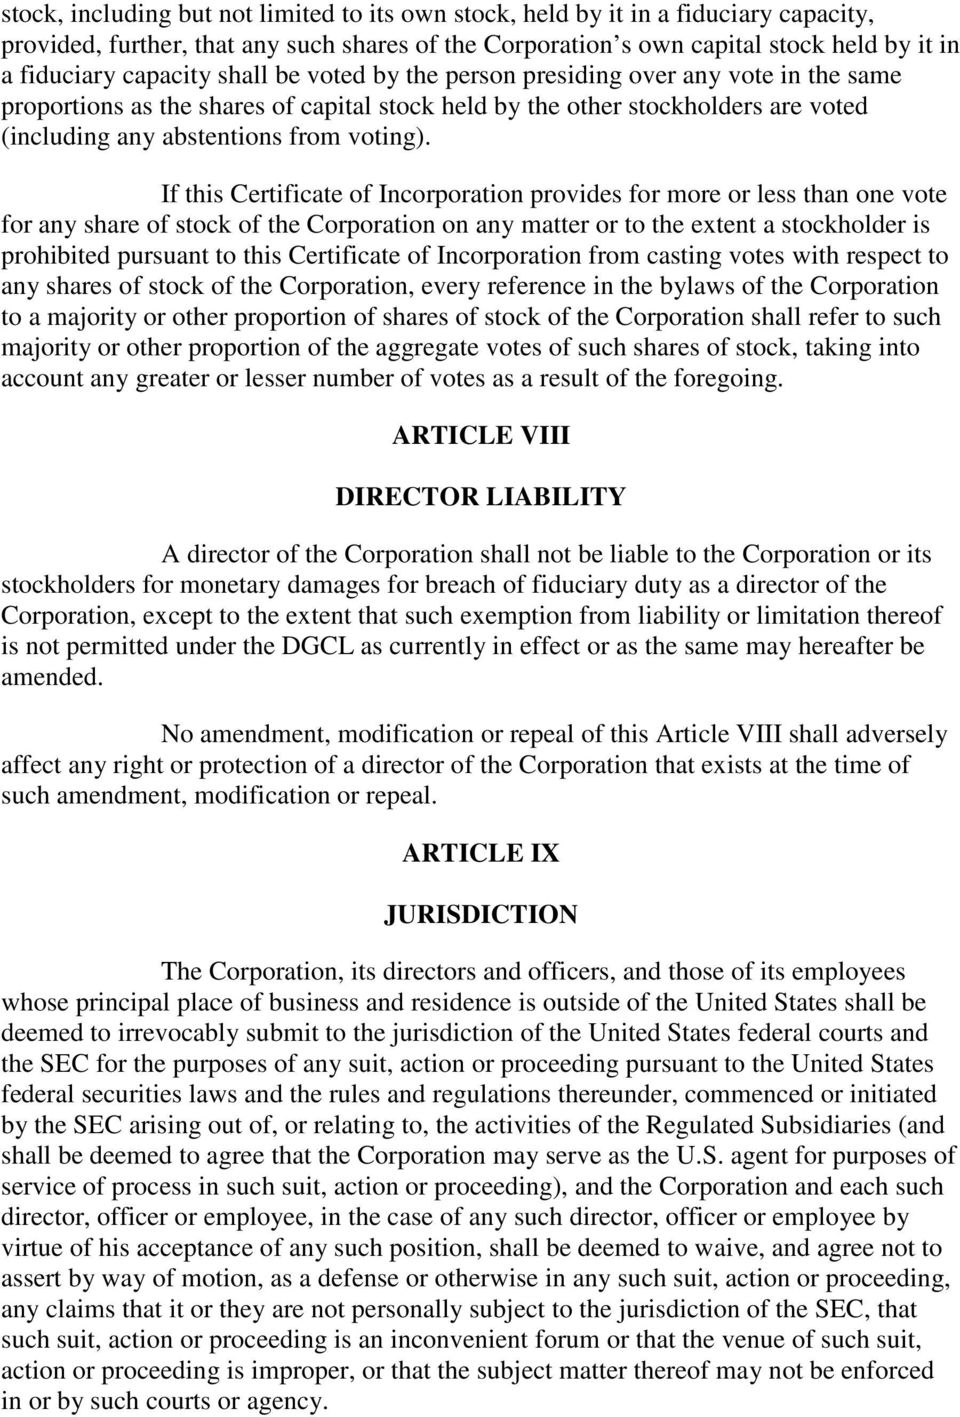 If this Certificate of Incorporation provides for more or less than one vote for any share of stock of the Corporation on any matter or to the extent a stockholder is prohibited pursuant to this